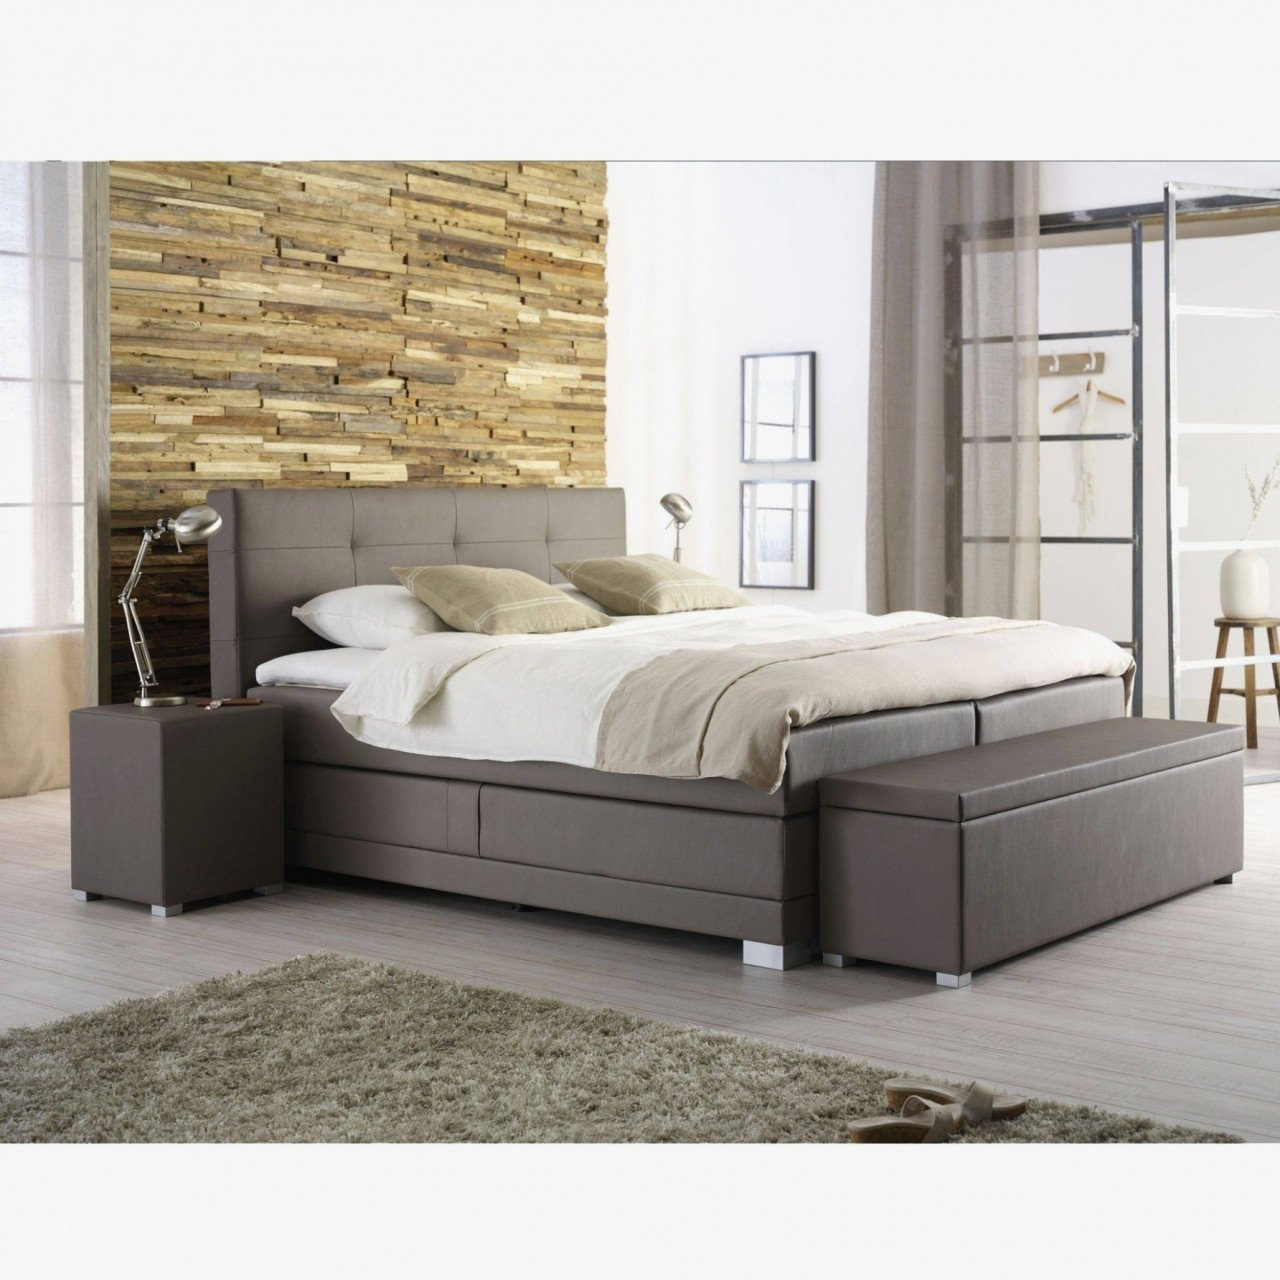 bed with drawers under drawer bed 30 beneficial bed tester bed tester bed 0d beds for durch bed with drawers under